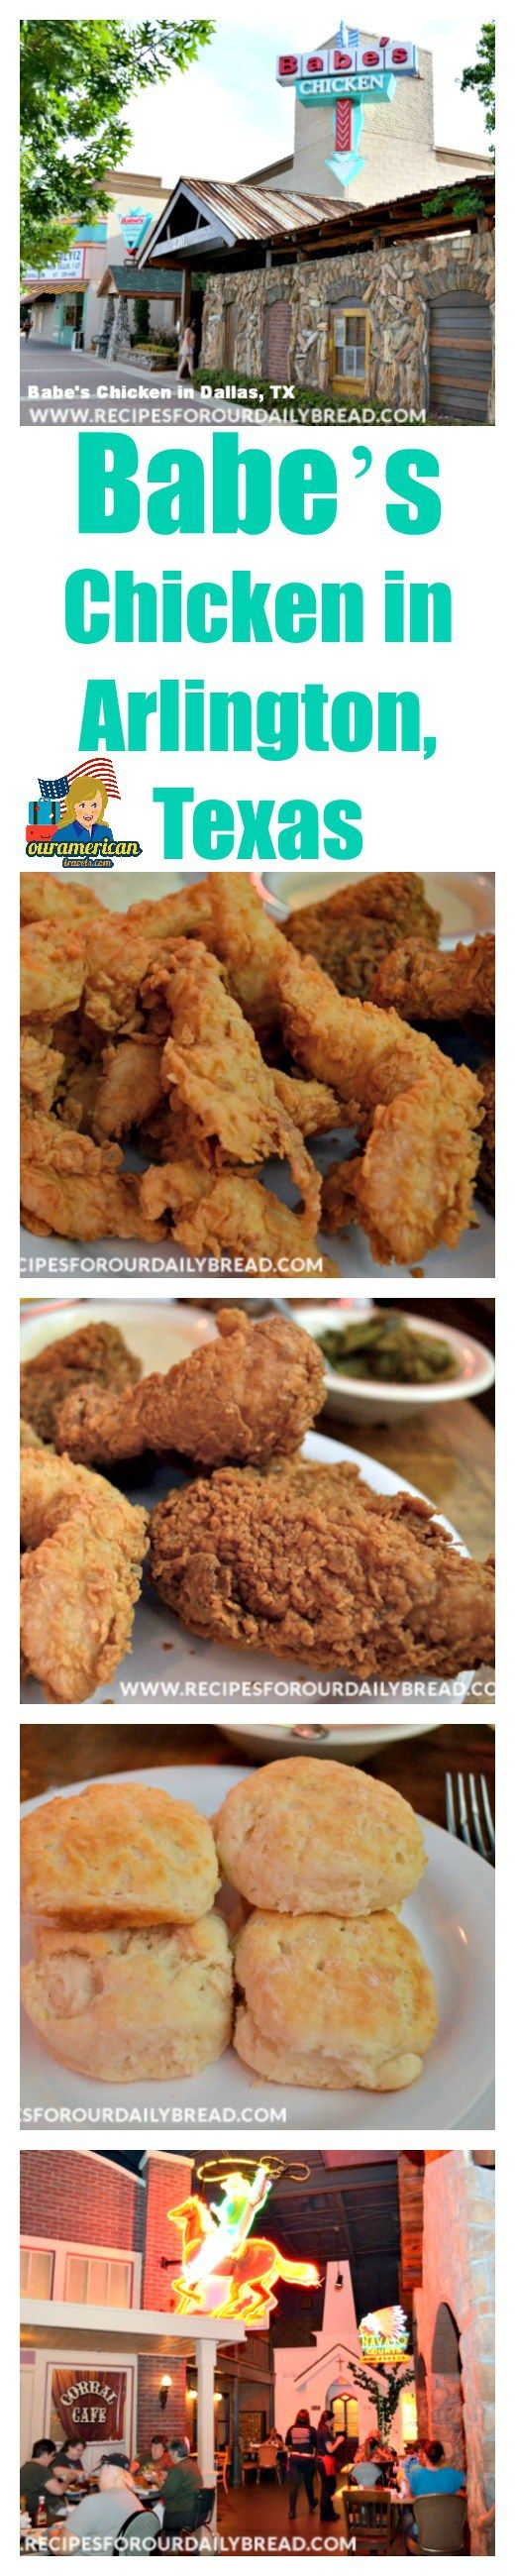 Babe's Chicken in Arlington, Texas is such a Great Family Fun Place with Delicious Food!